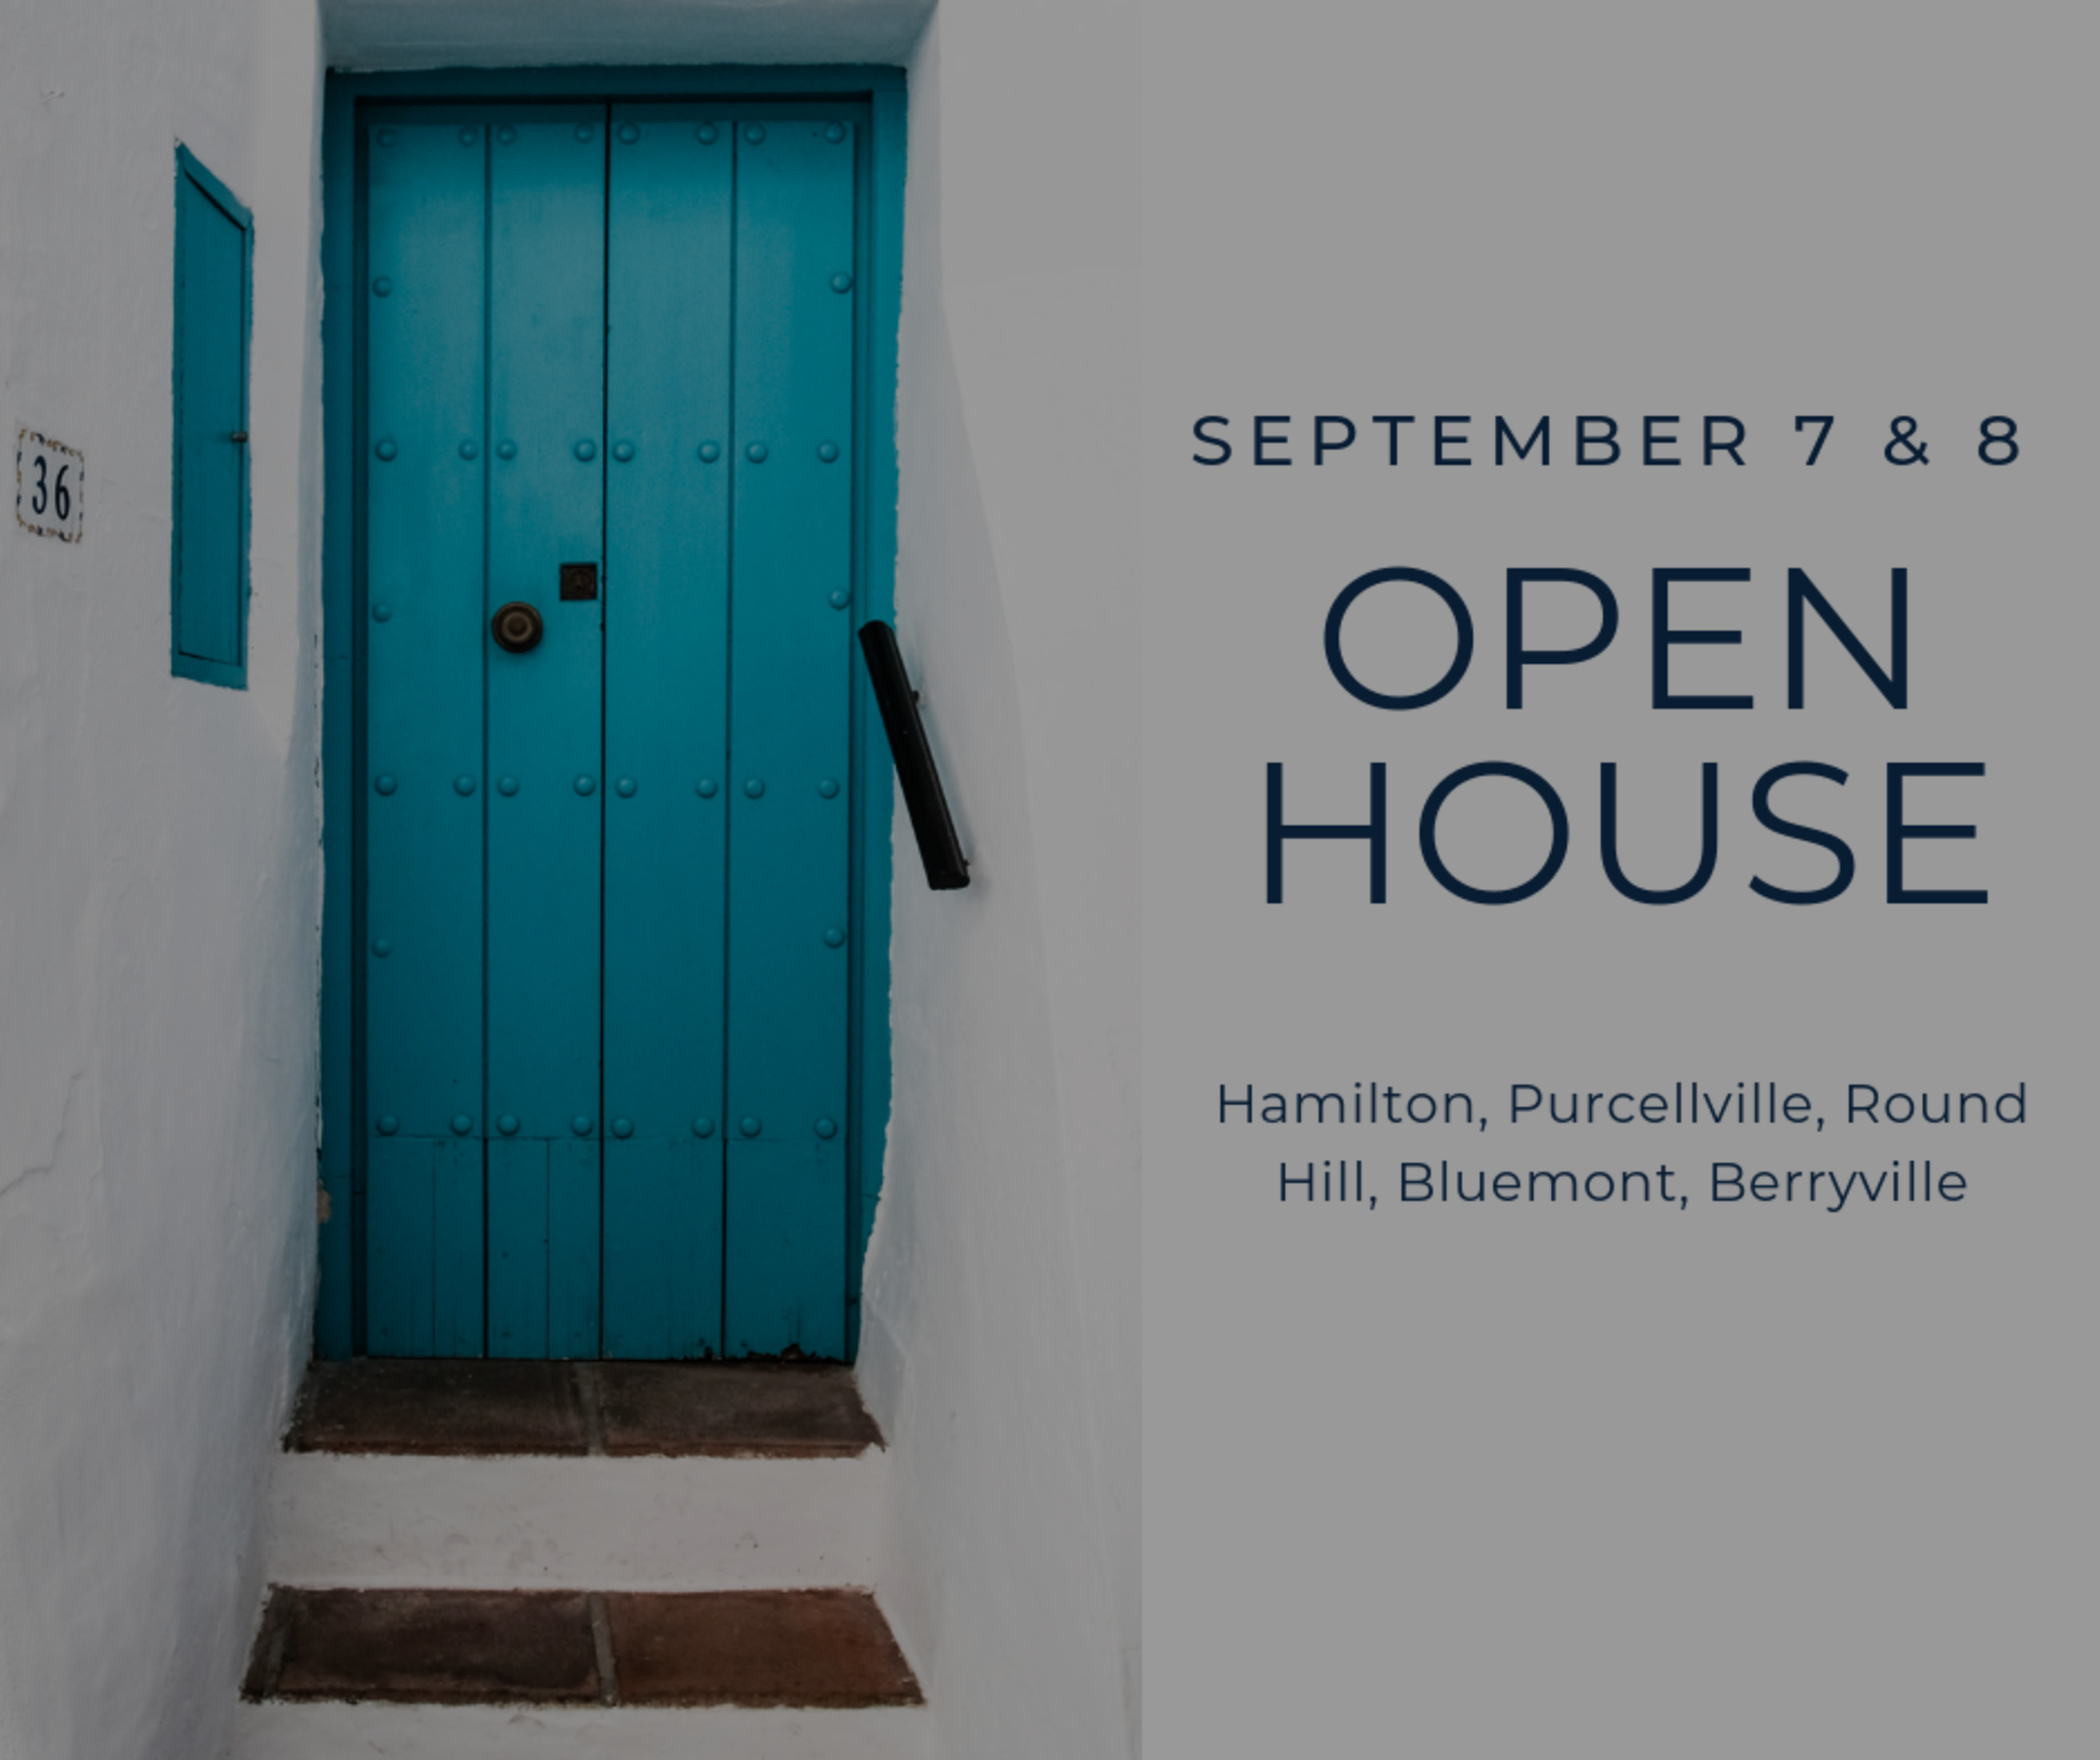 Open House List 9/7/19 – 9/8/19